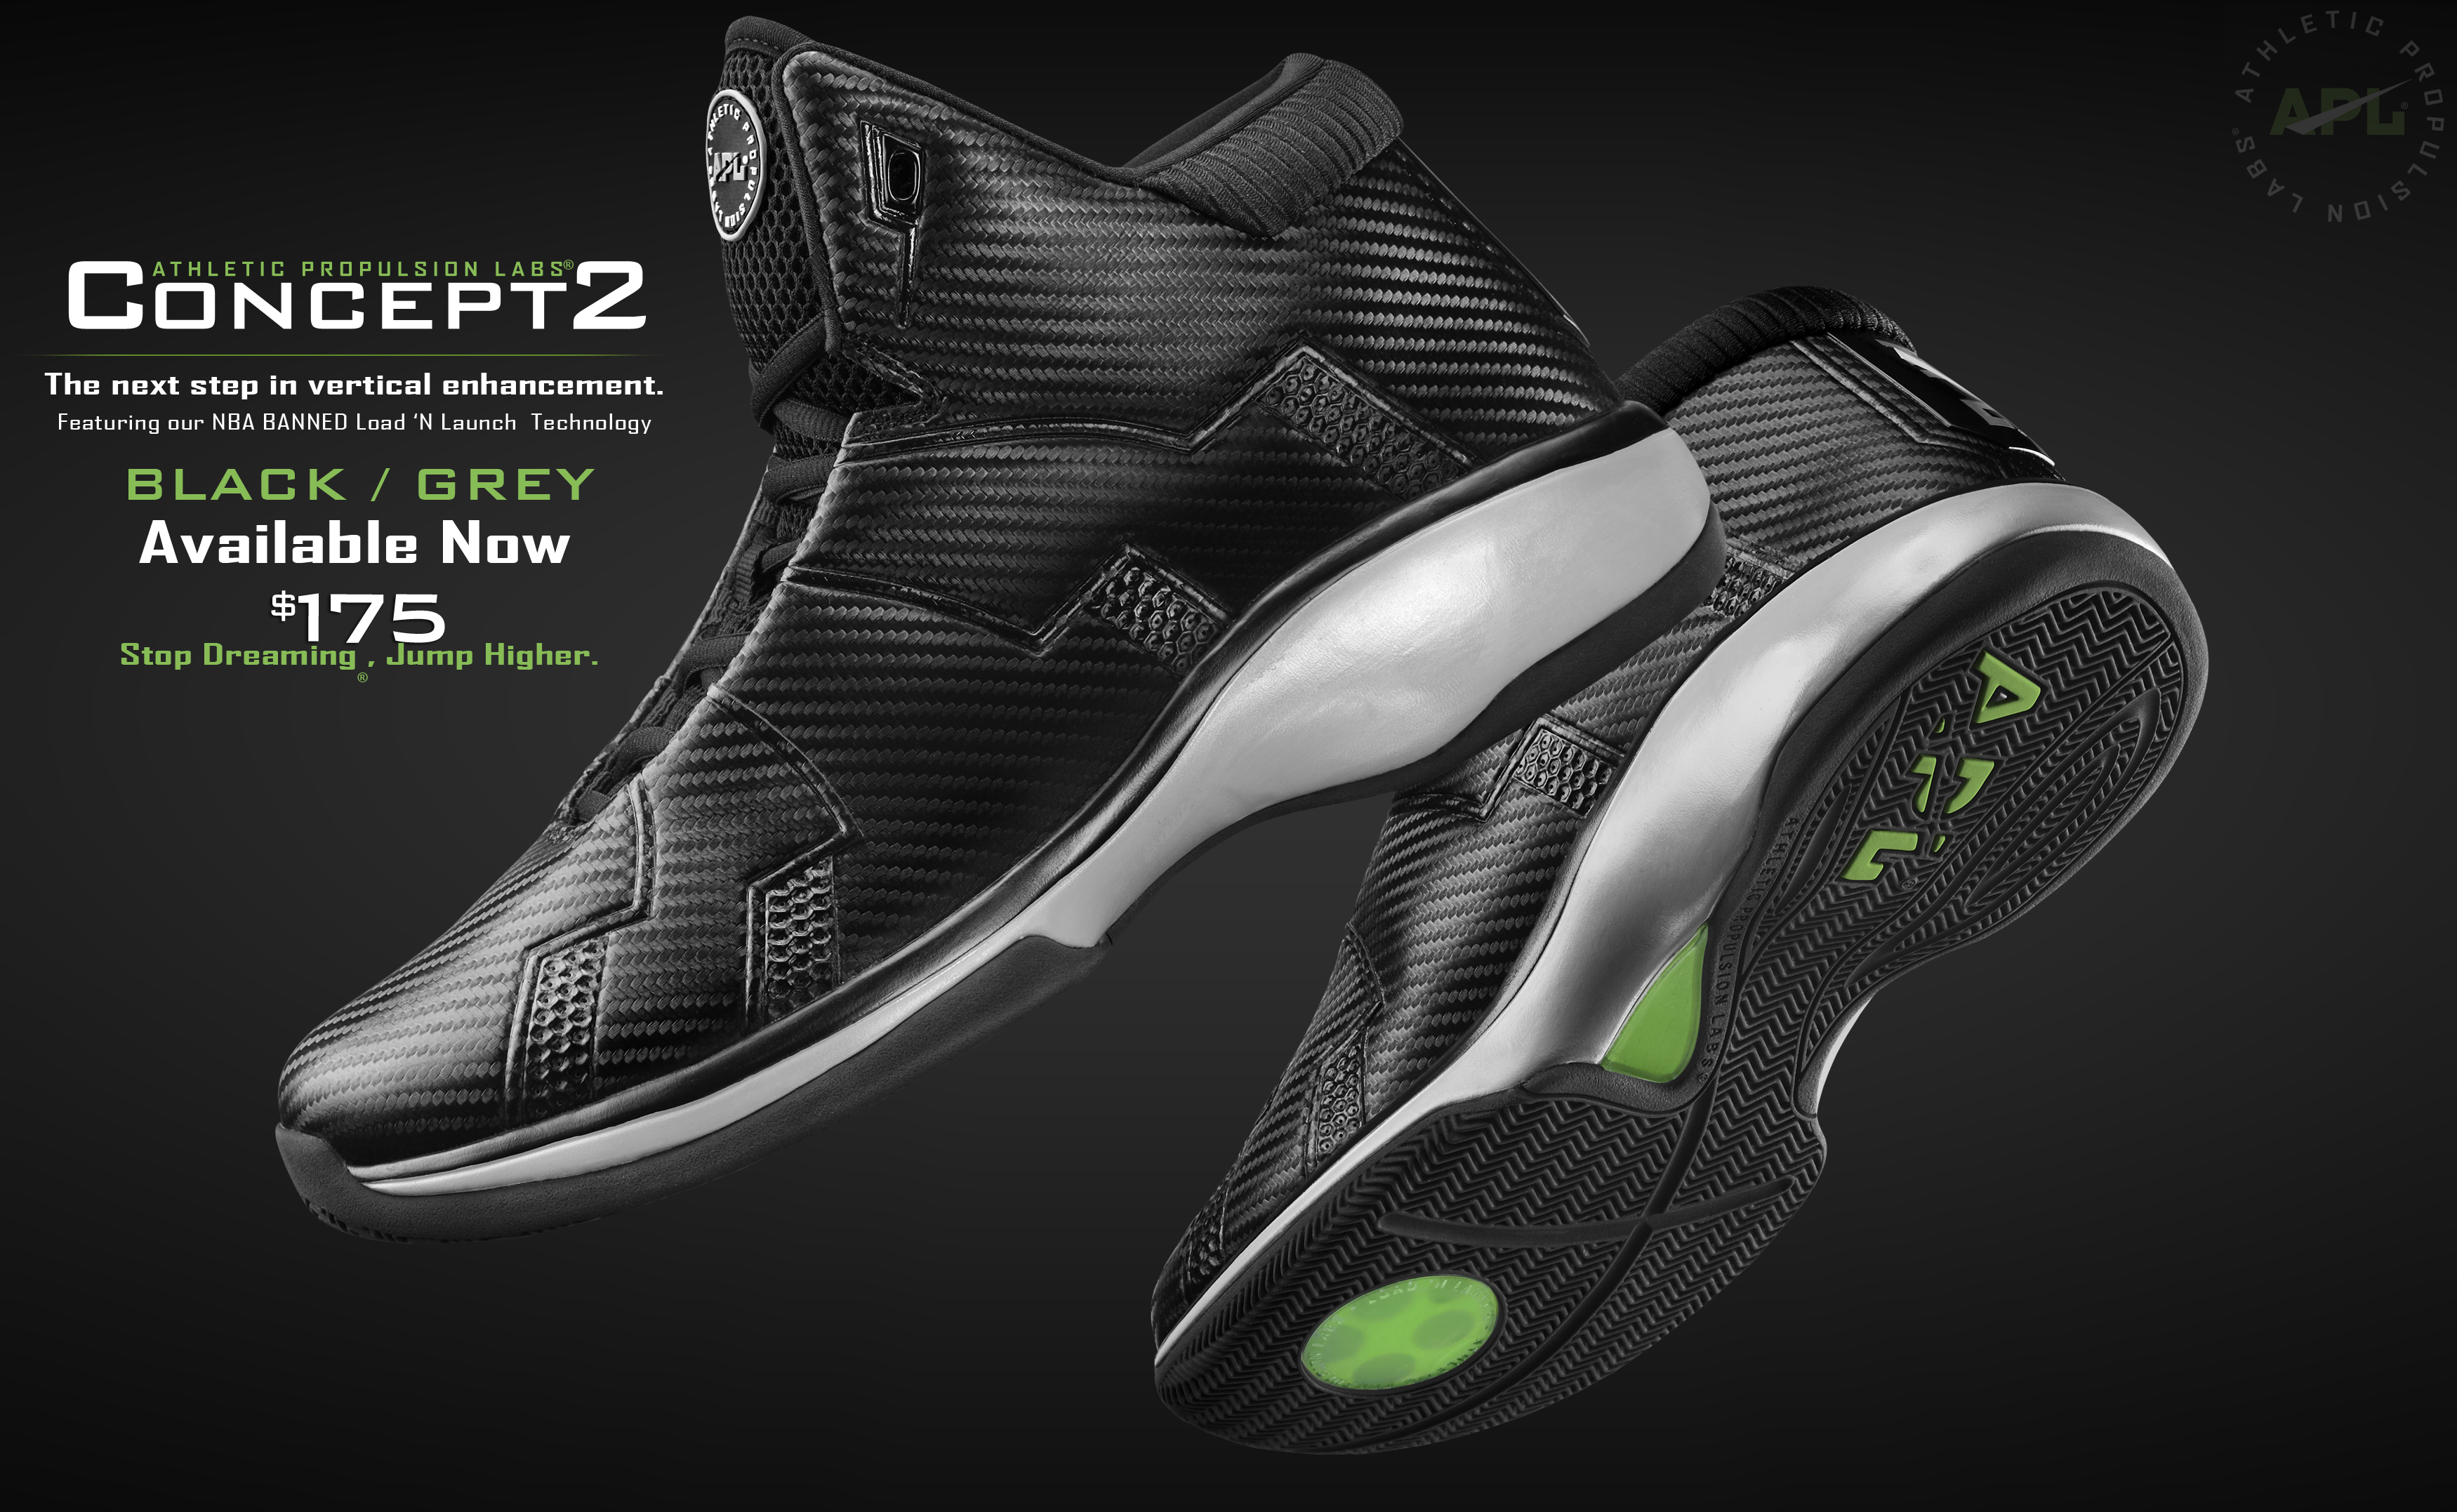 best website 7eff8 02047 Athletic Propulsion Labs Concept 2 Basketball Shoes Now Available in Black GreyAPL  Concept 2 Basketball Shoes Now Available In Black Grey ...